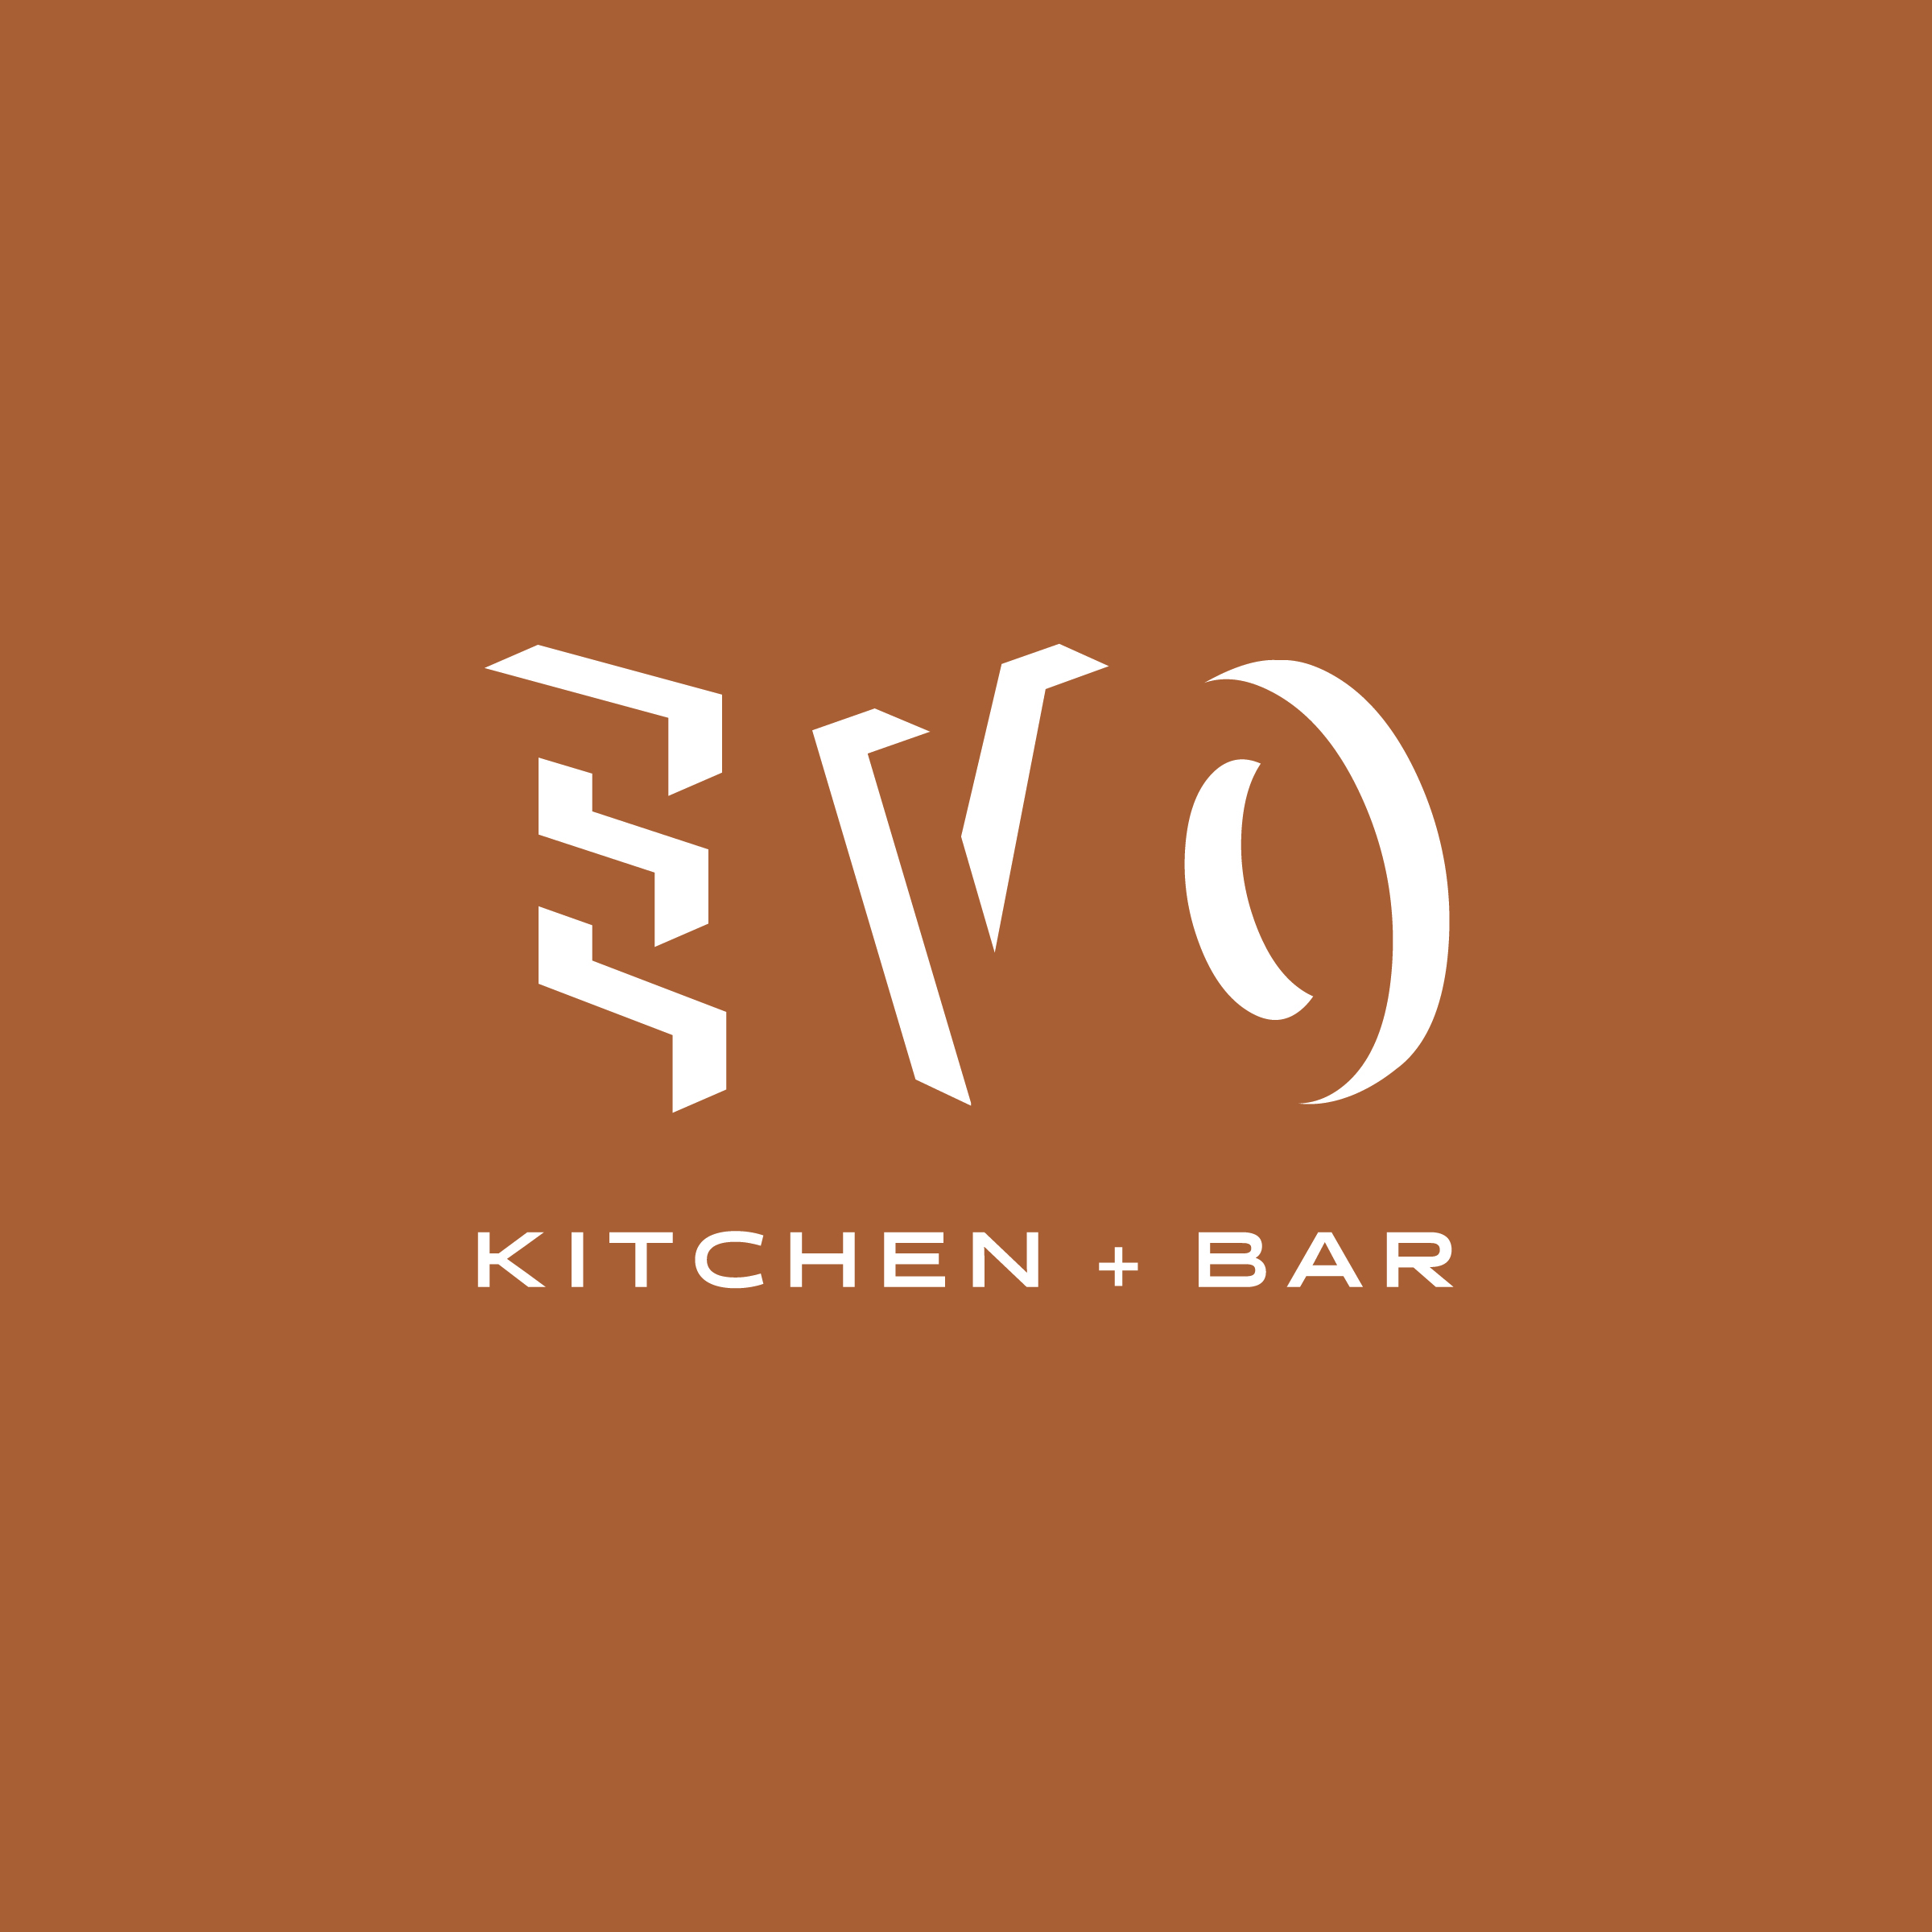 EVO_Logo_Square_Copper_CMYK.jpg